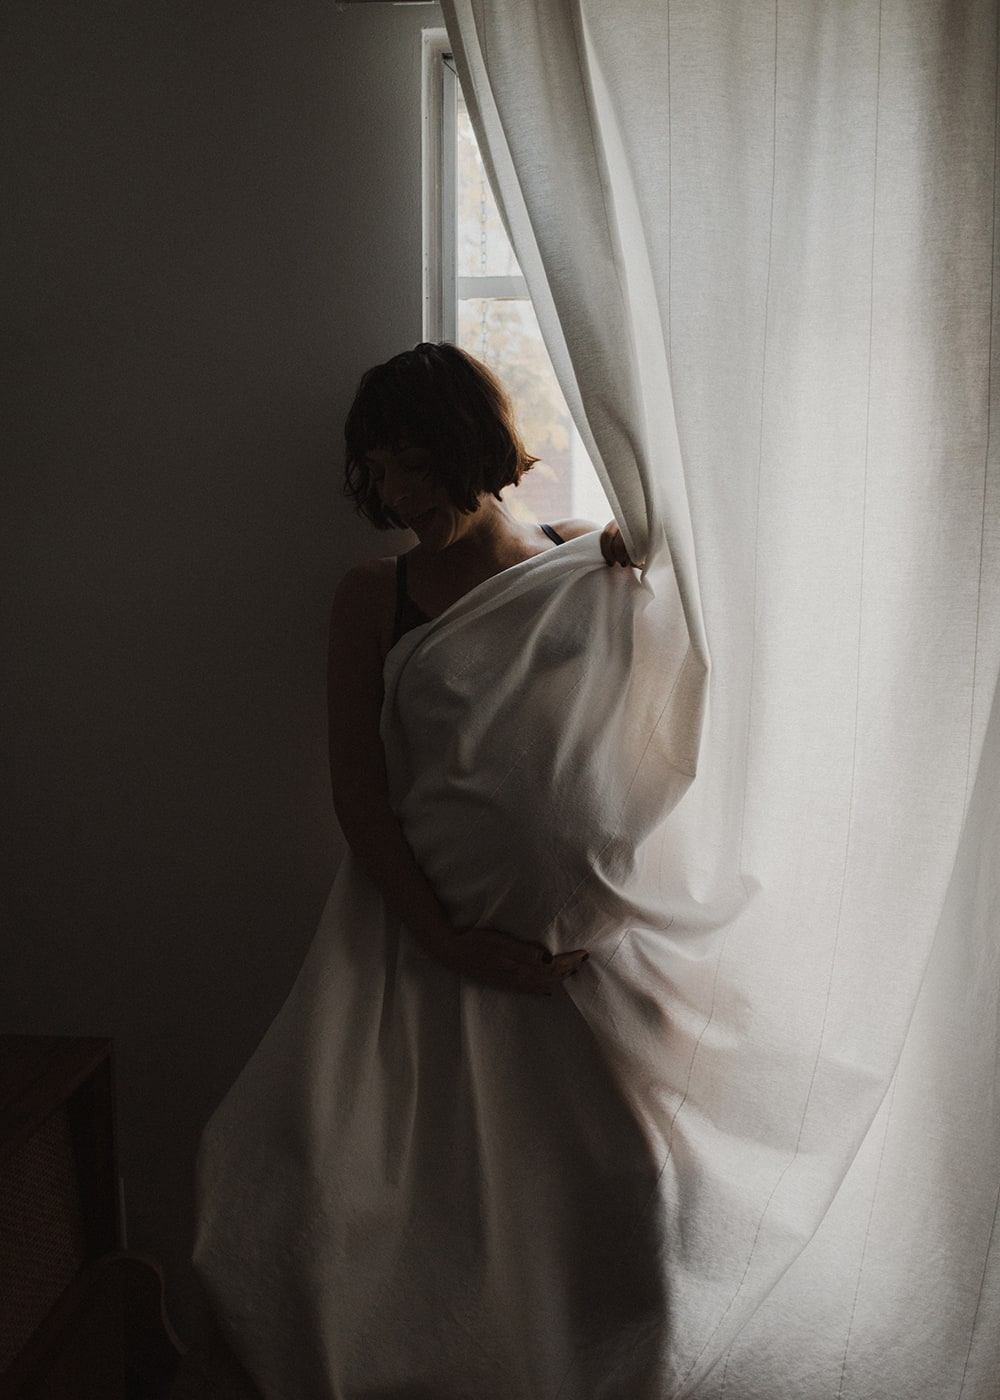 woman cuddling in window with curtains